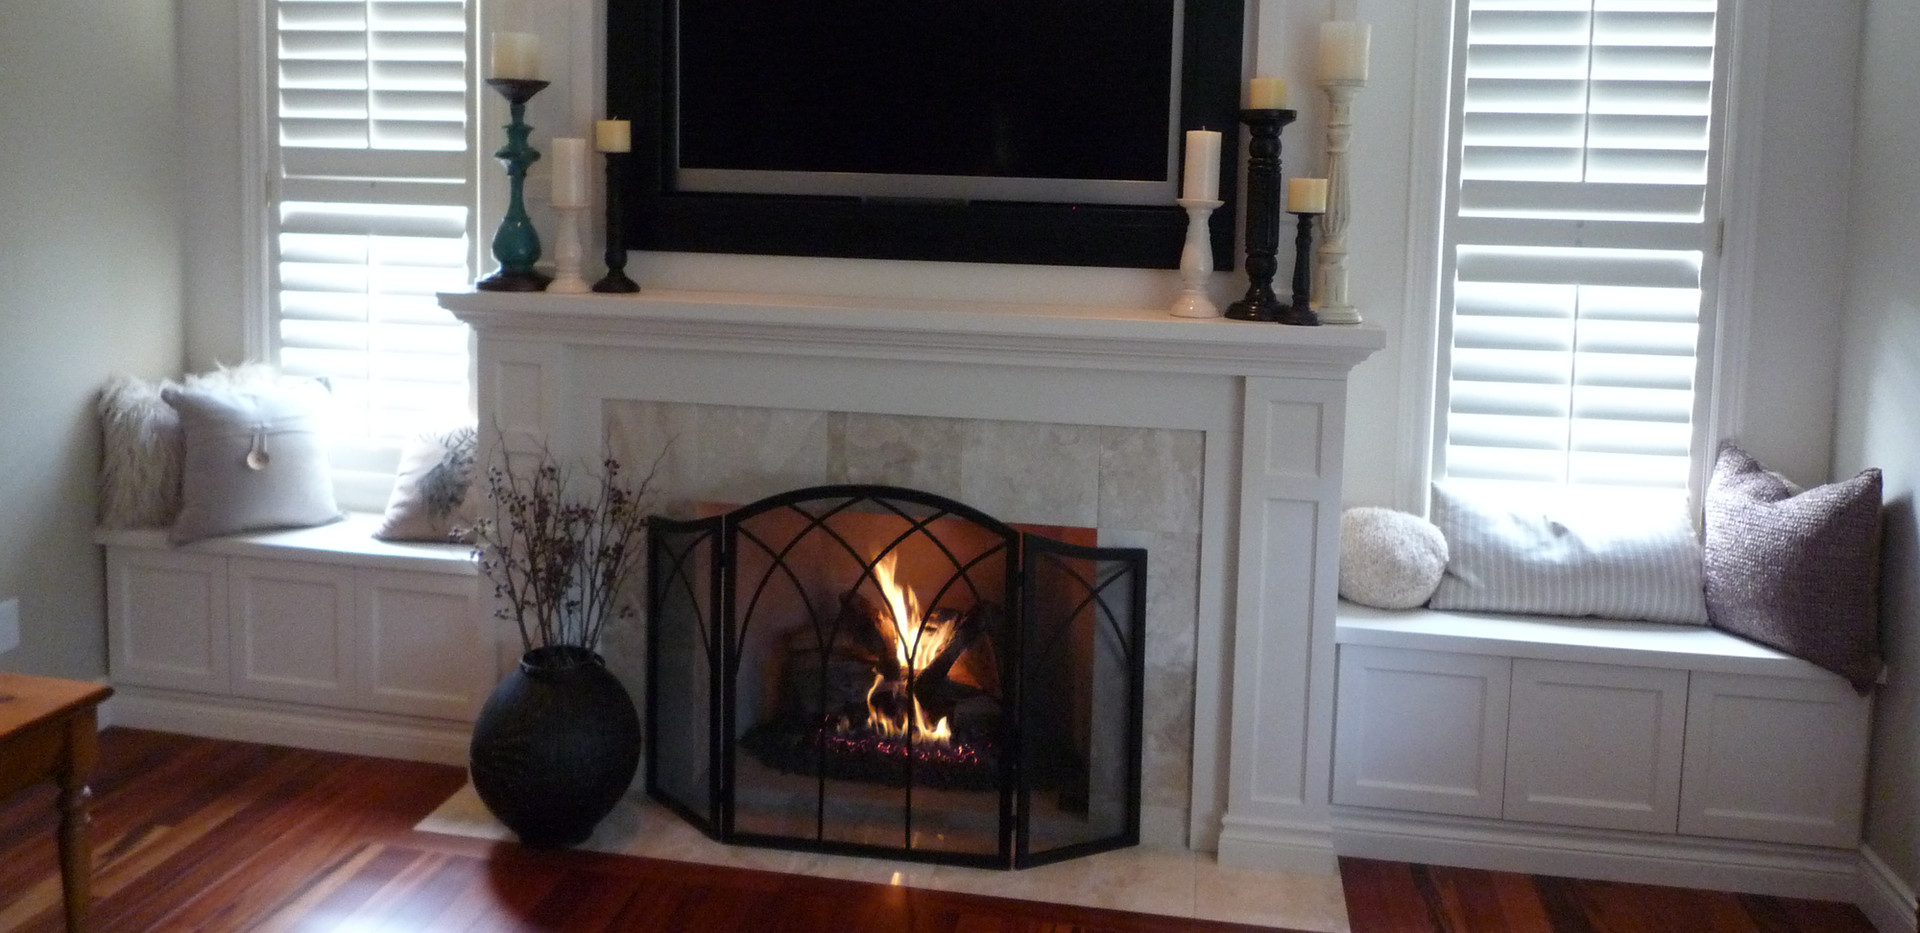 Over Fireplace Mounted TV